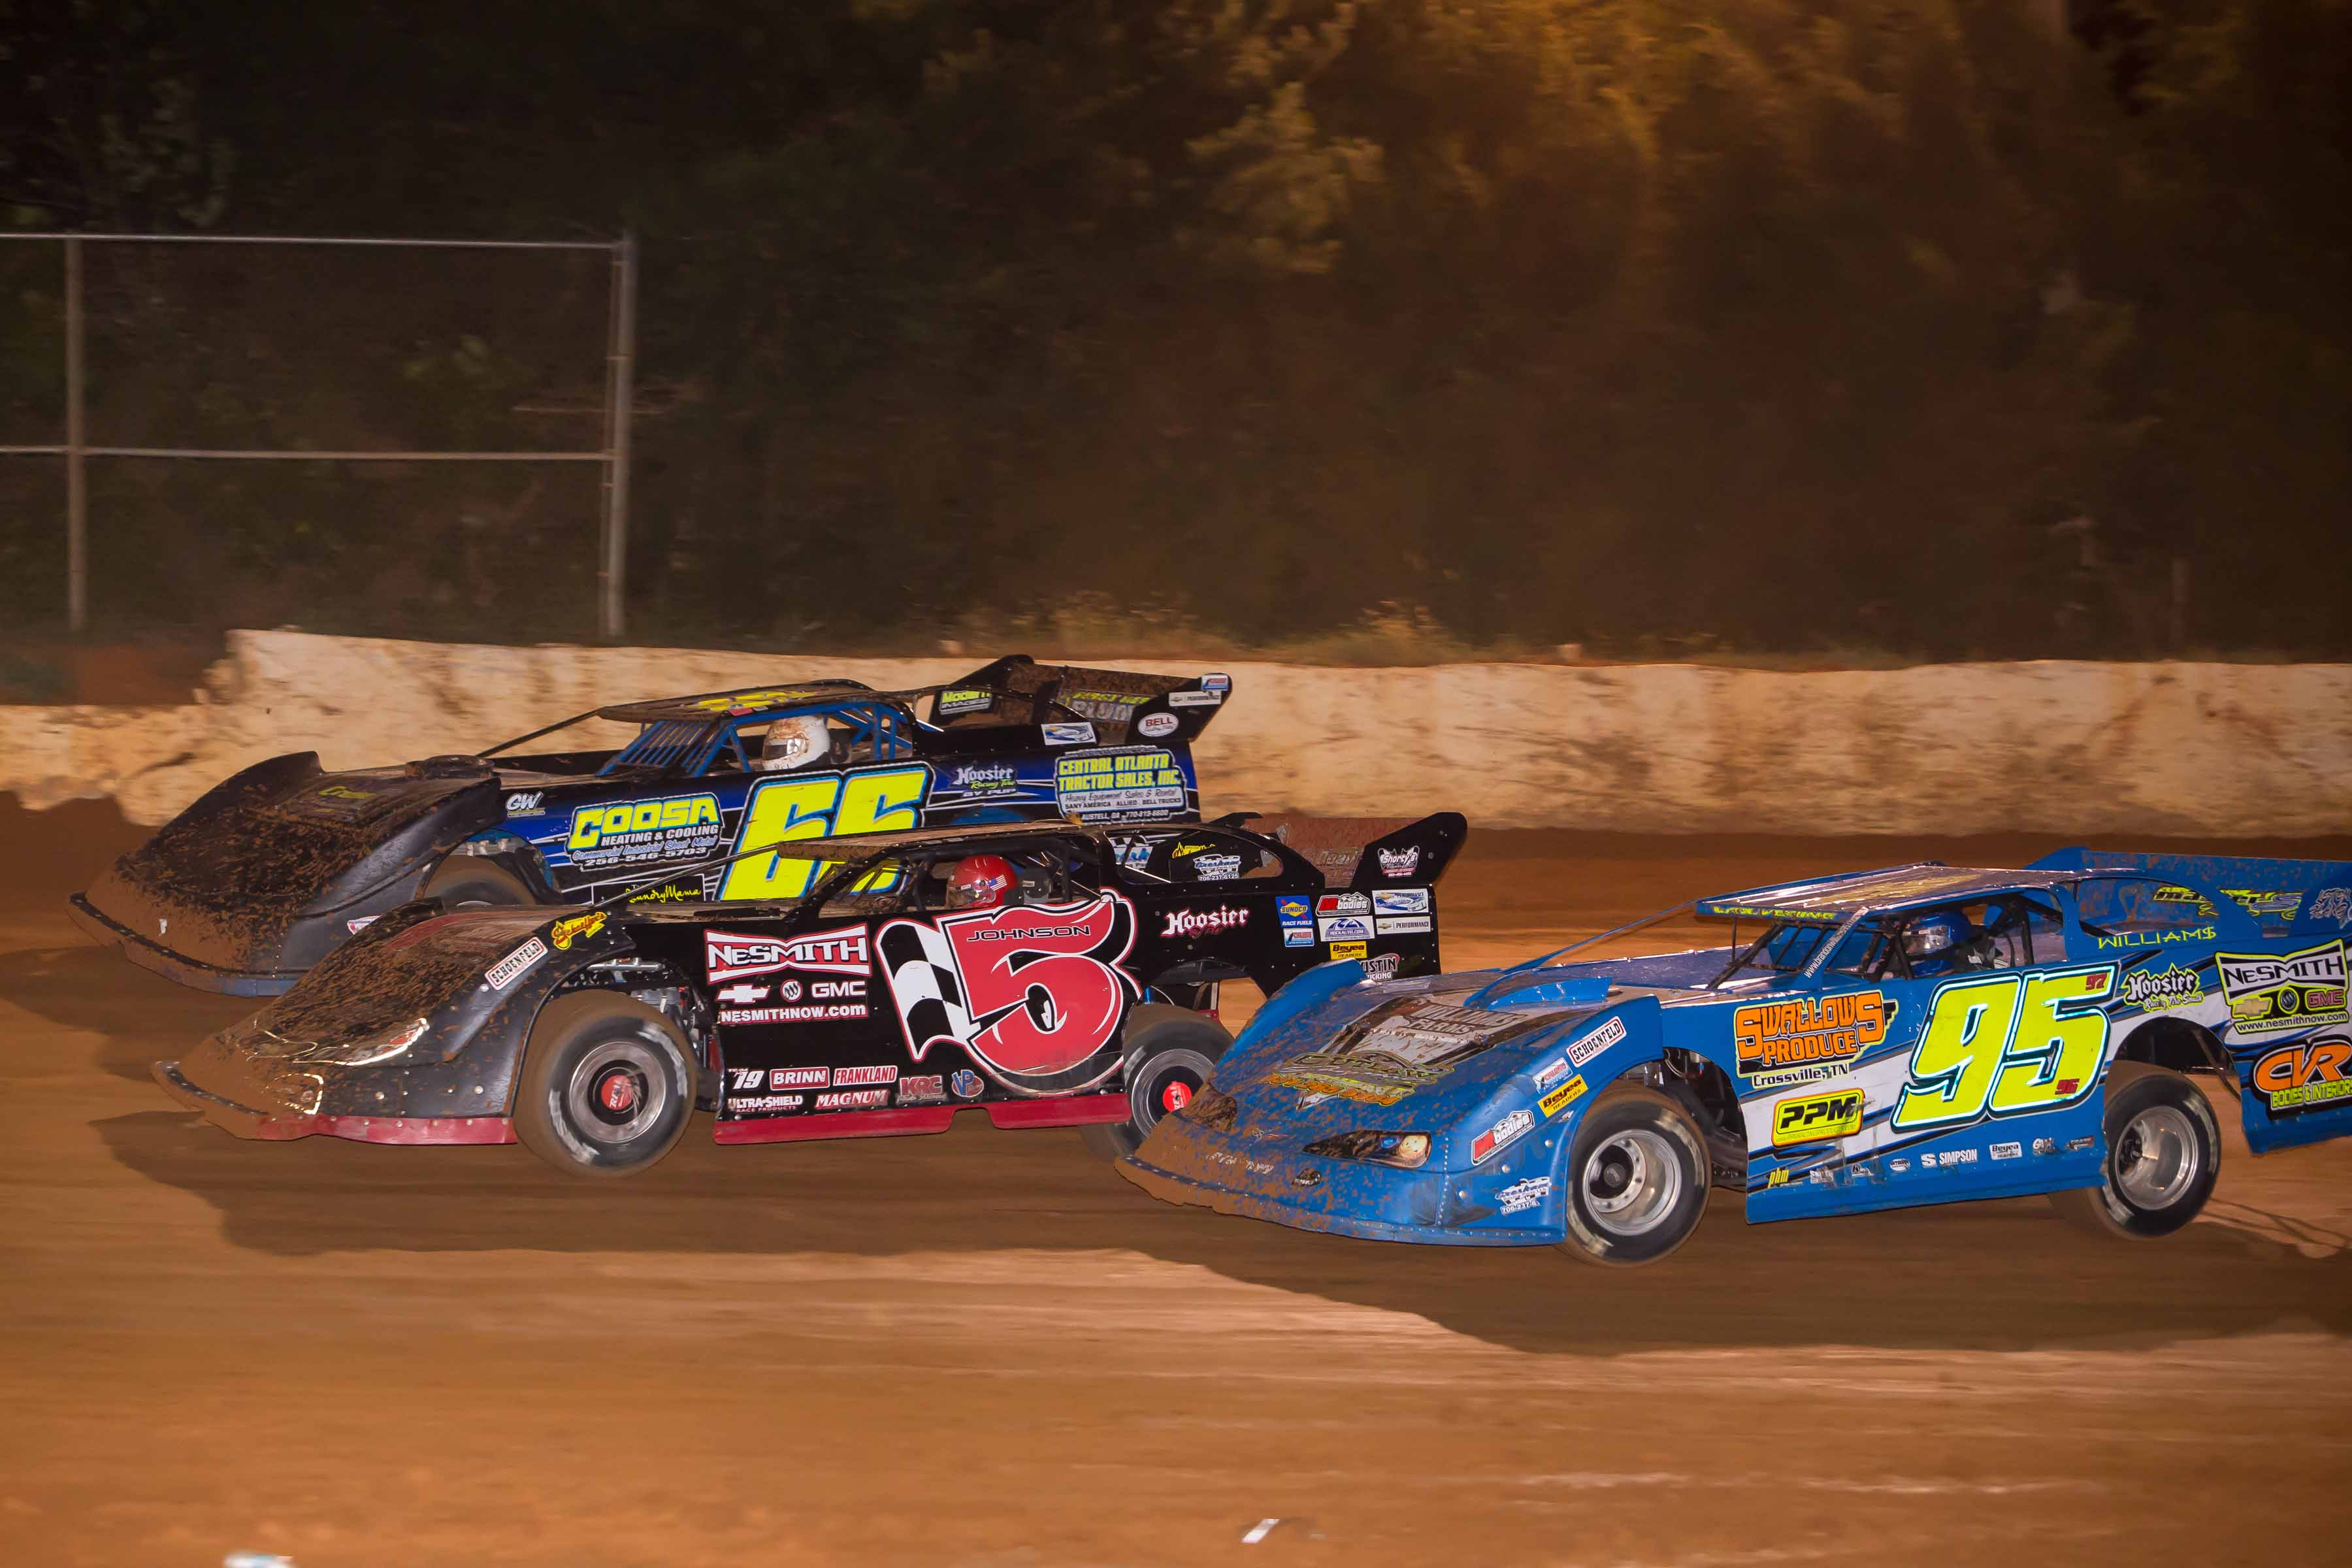 CHEVY SUPER SERIES 2016 SEASON OPENER AT 411 MOTOR SPEEDWAY ON MARCH 26